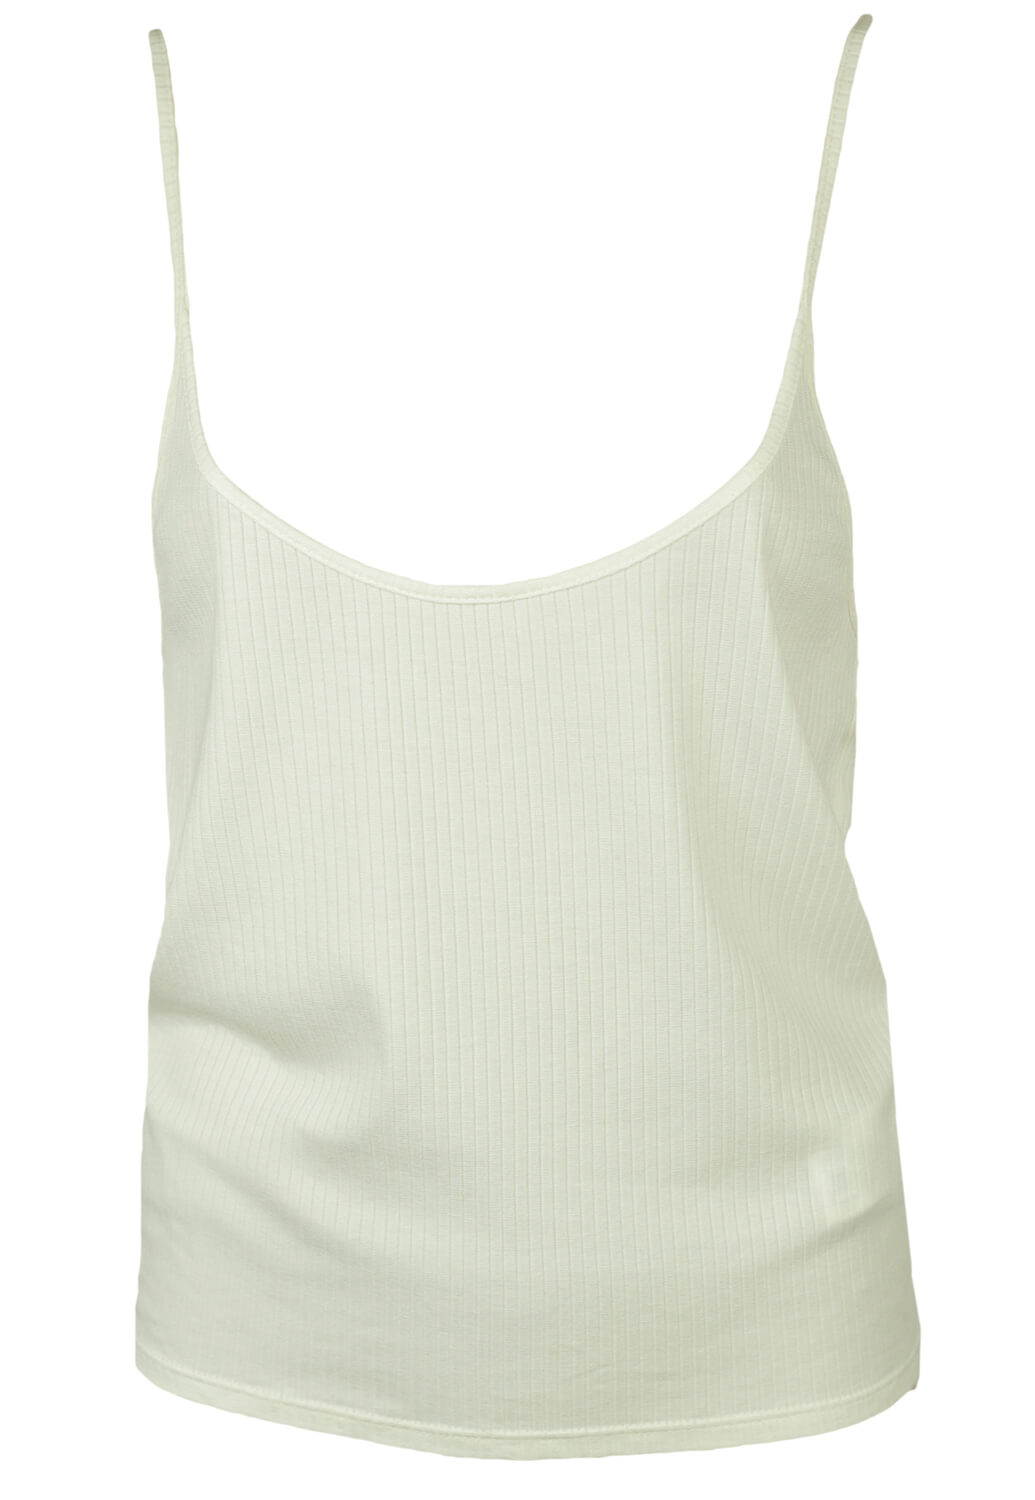 Maieu Pimkie Basic White